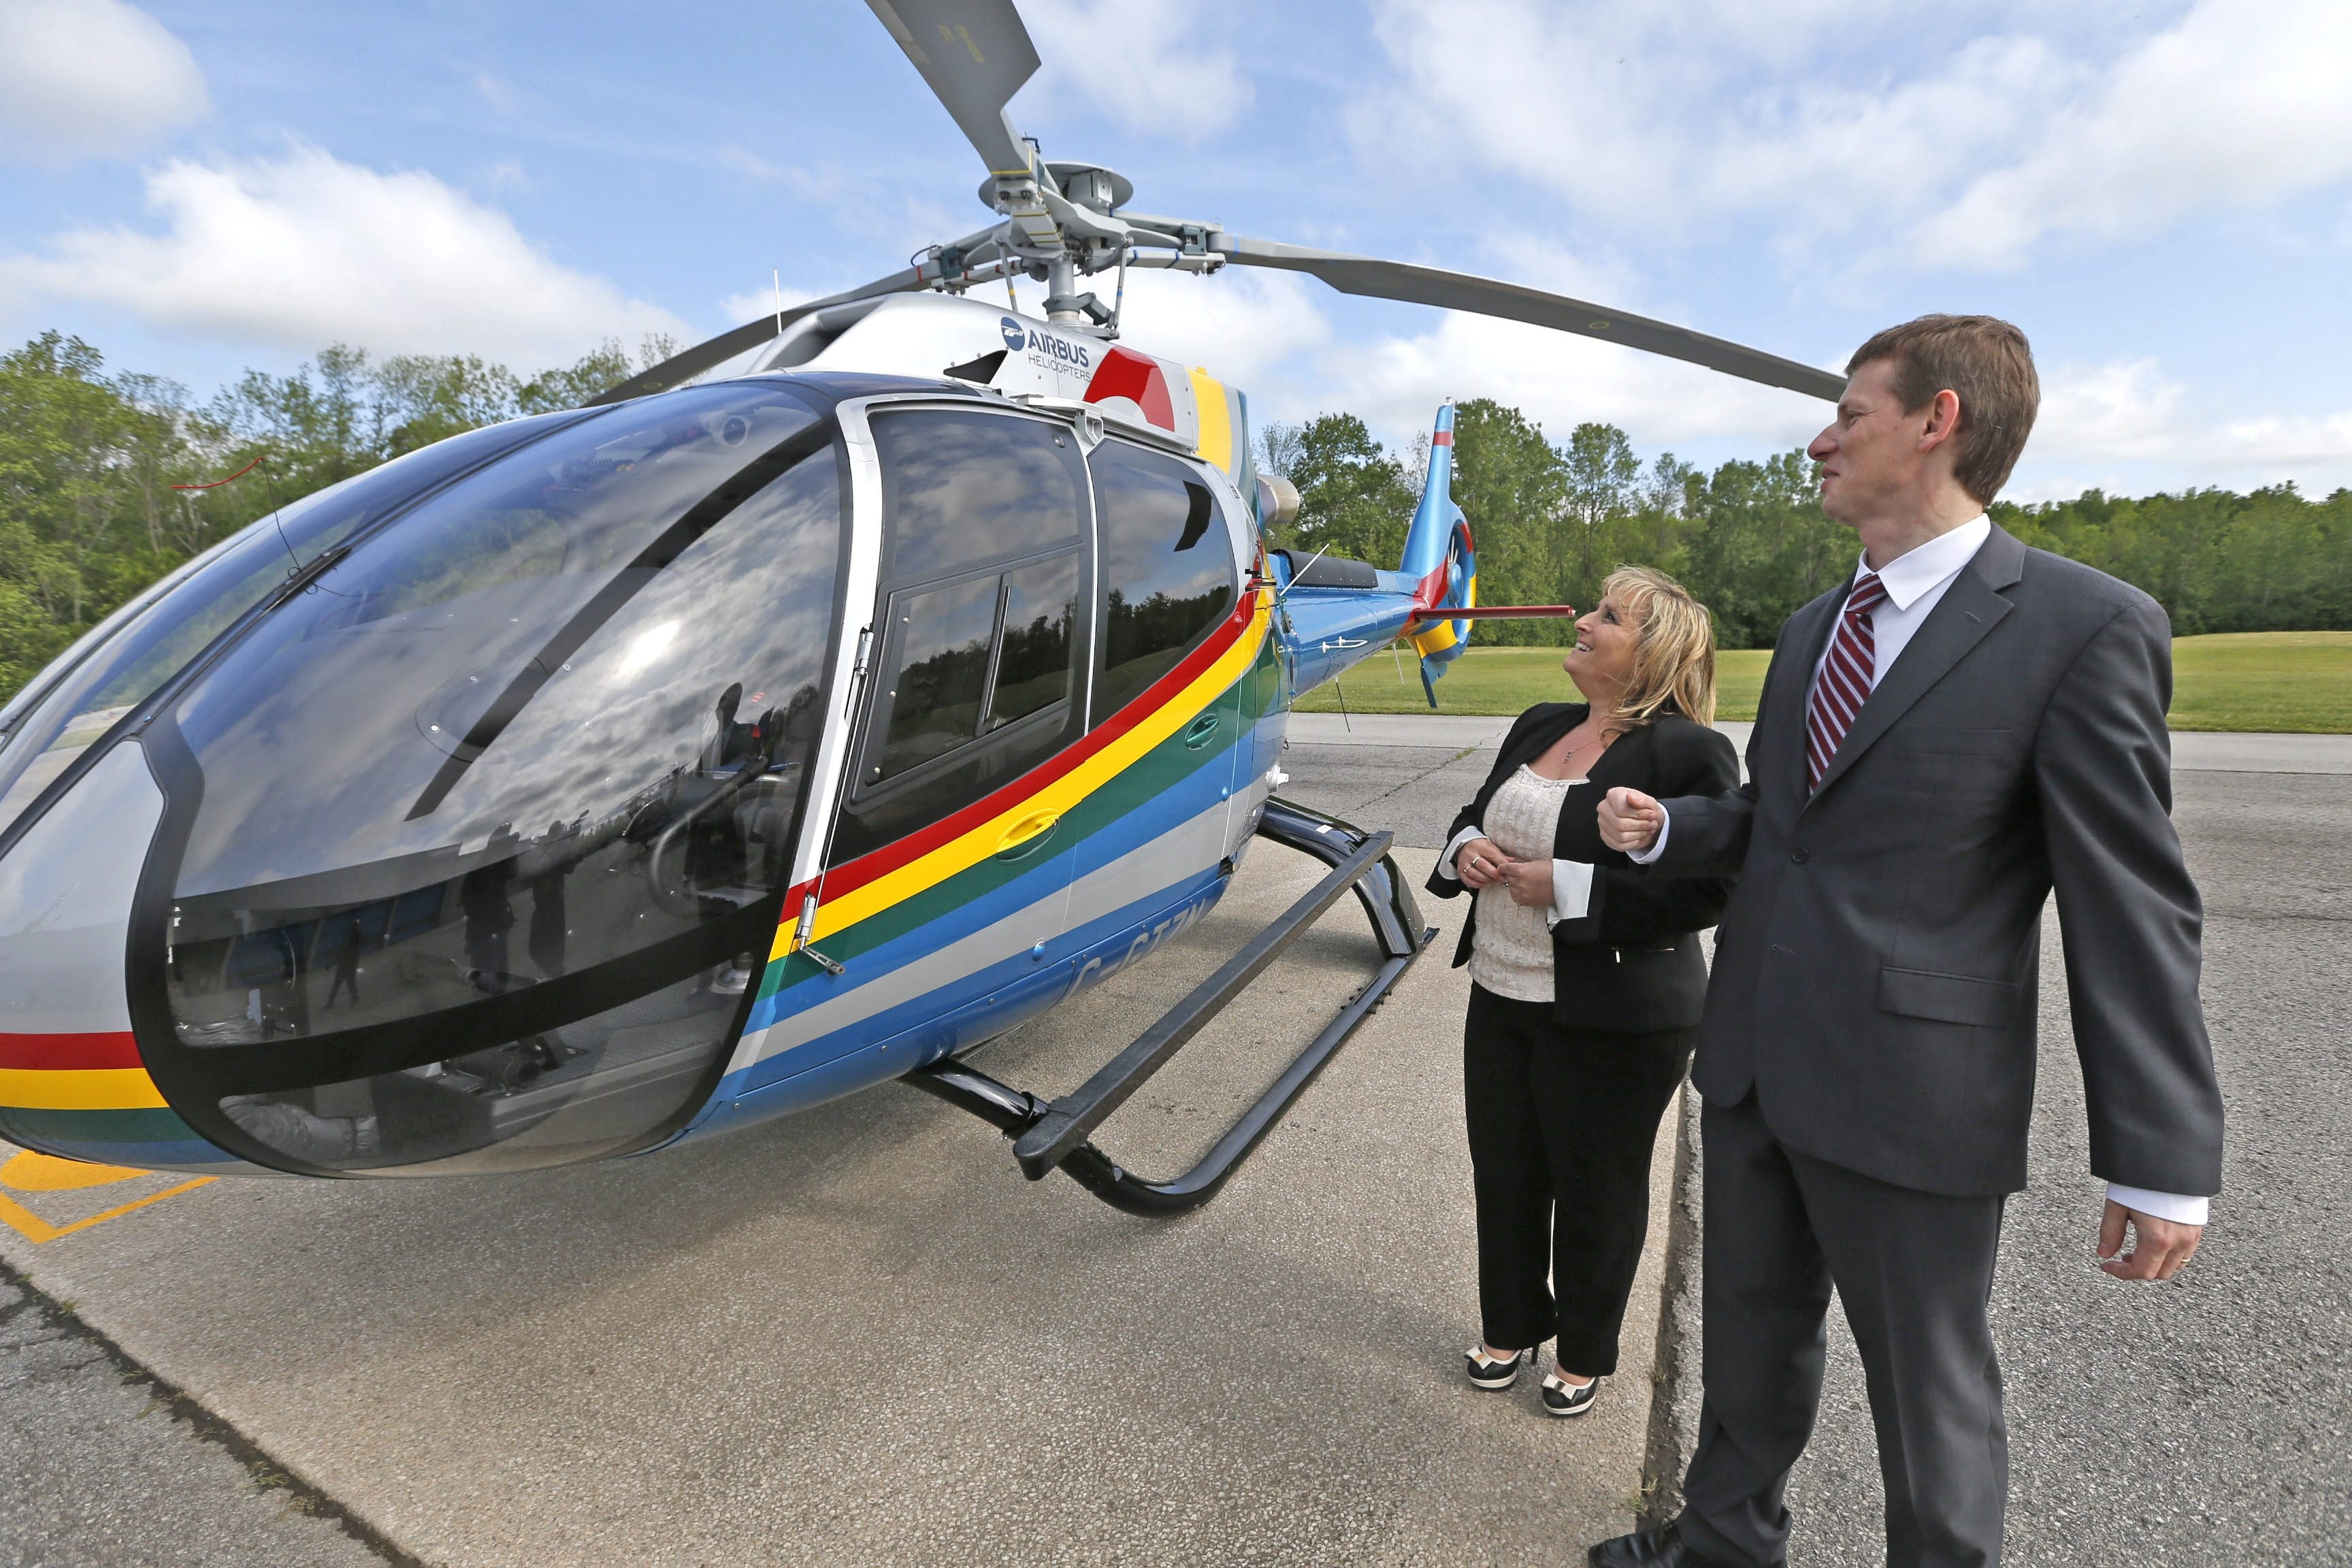 Romain Trapp, CEO of Airbus Helicopters Canada, and Anna Pierce, vice president of Niagara Helicopters Ltd., admire one of the four H130s that the Fort Erie, Ont., manufacturer sold to the company, which provides aerial tours of Niagara Falls.